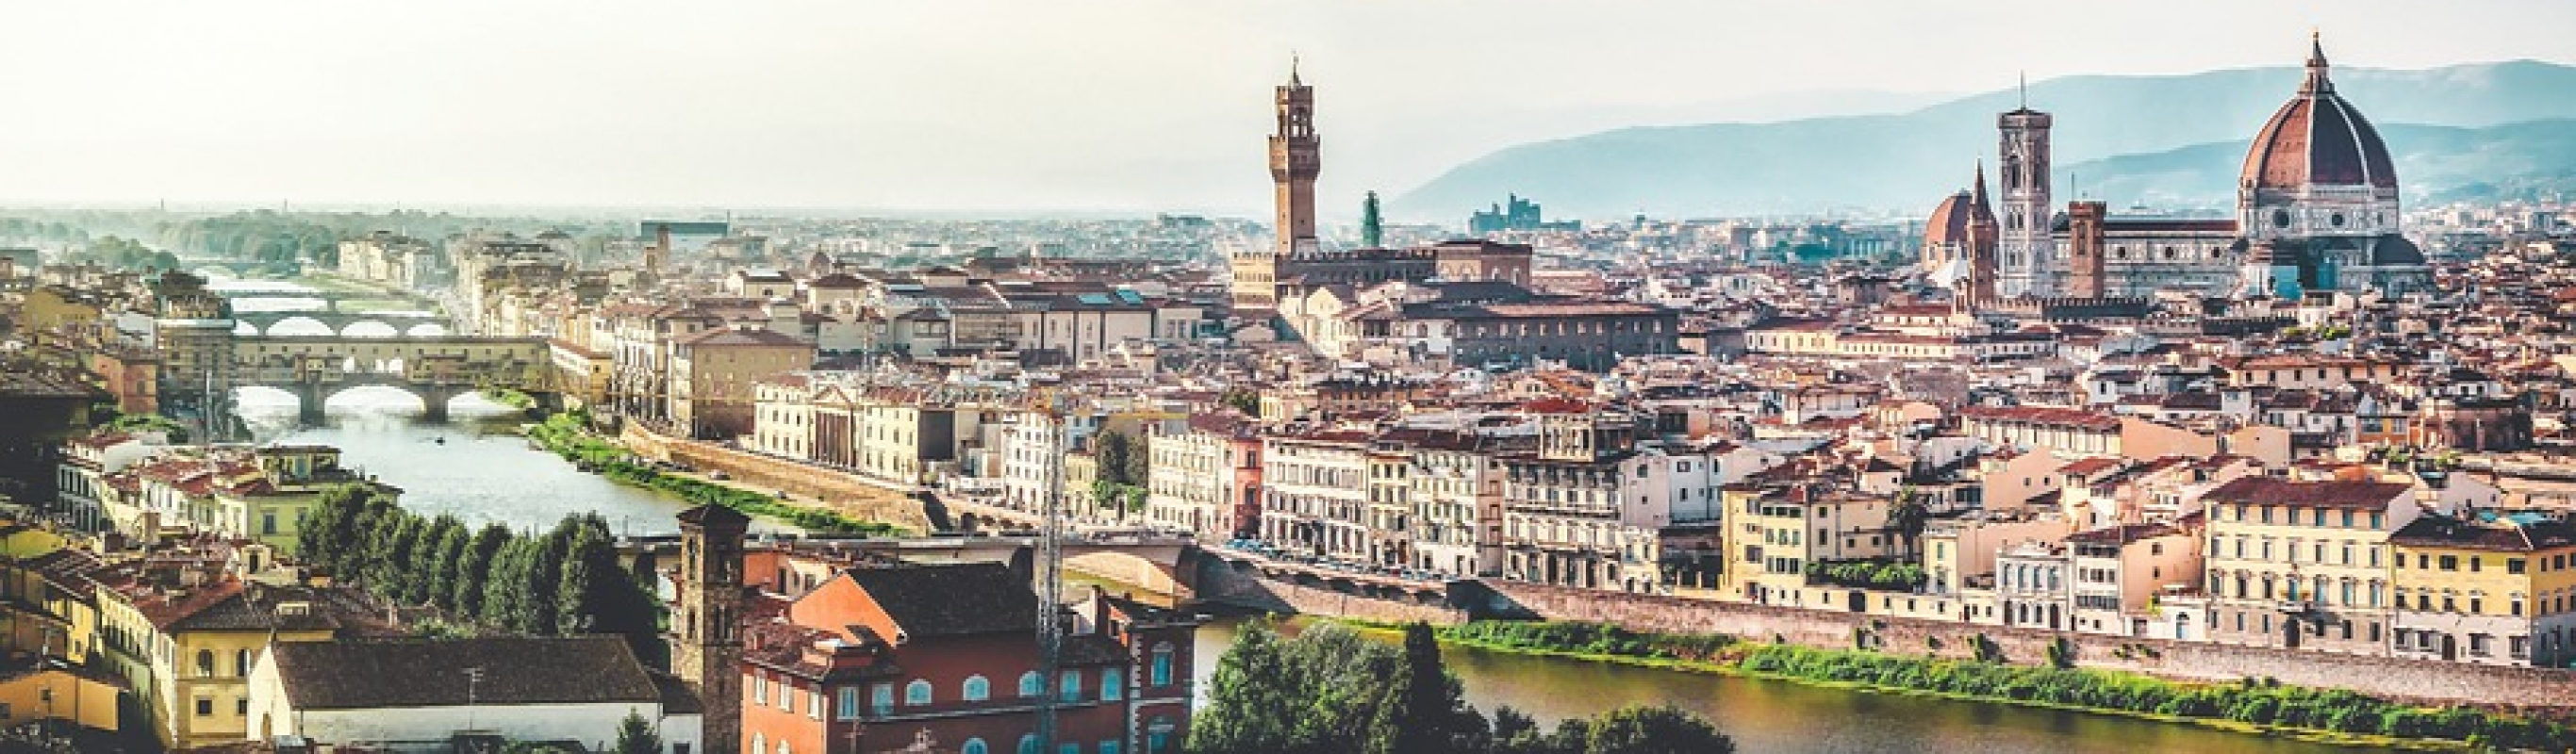 What do Plovdiv and Florence have in common?